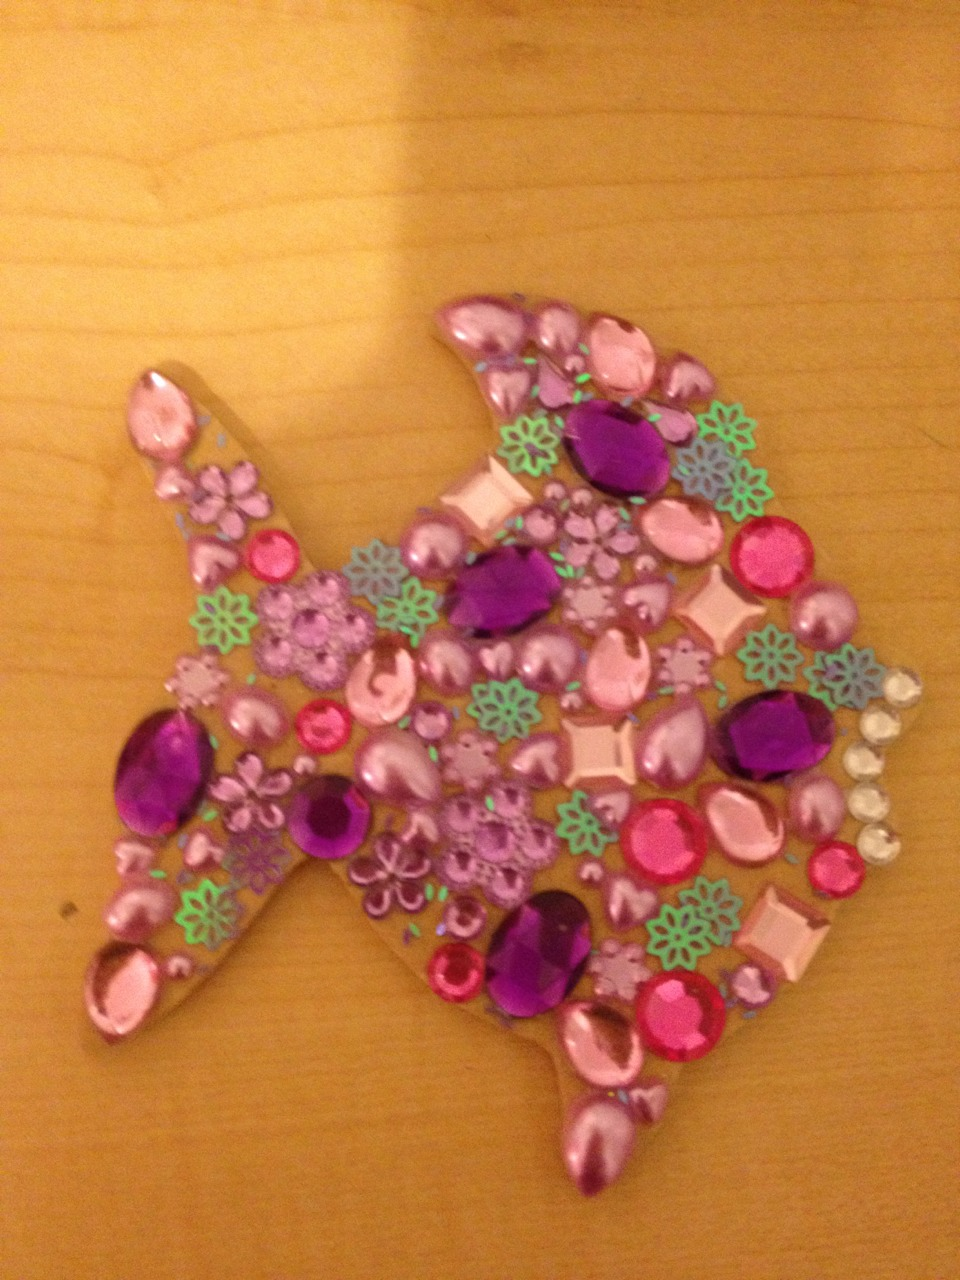 All you need is a wooden shape and some gems. Simply cover you woodenly shape with glue and cover it with your gems! This DIY is super girly and fun!